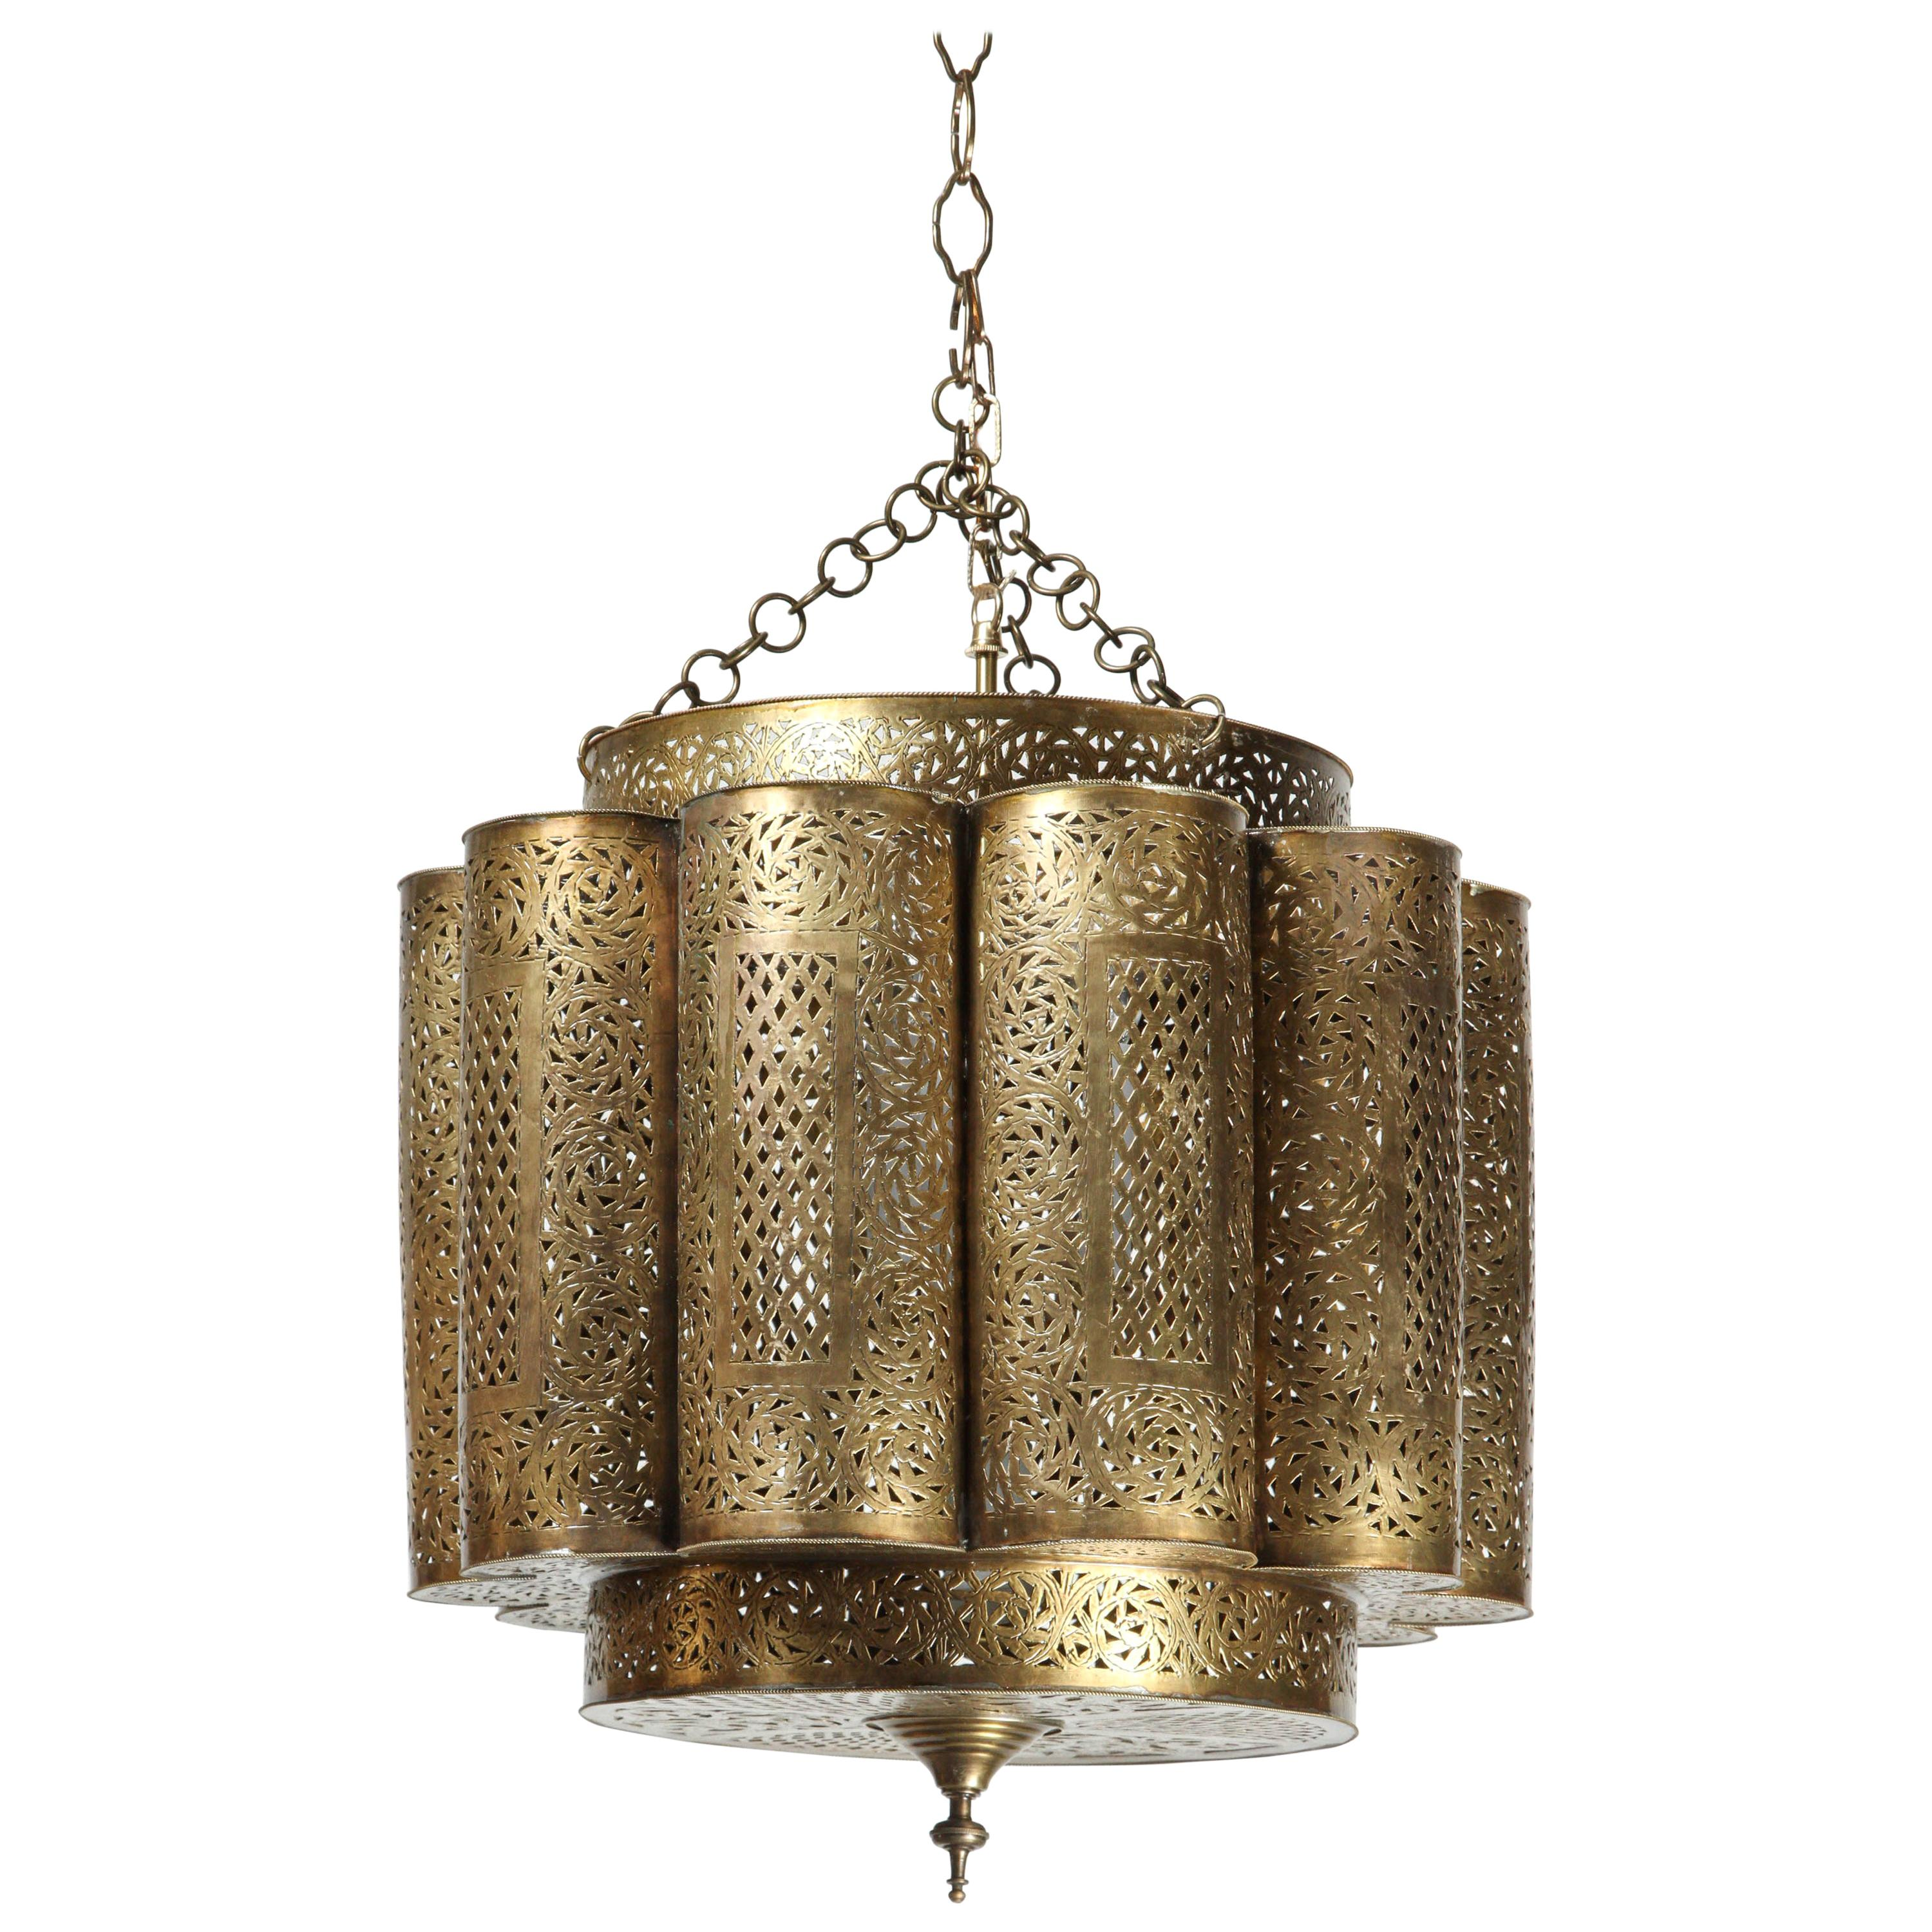 Large Brass Moroccan Chandelier in Alberto Pinto Style